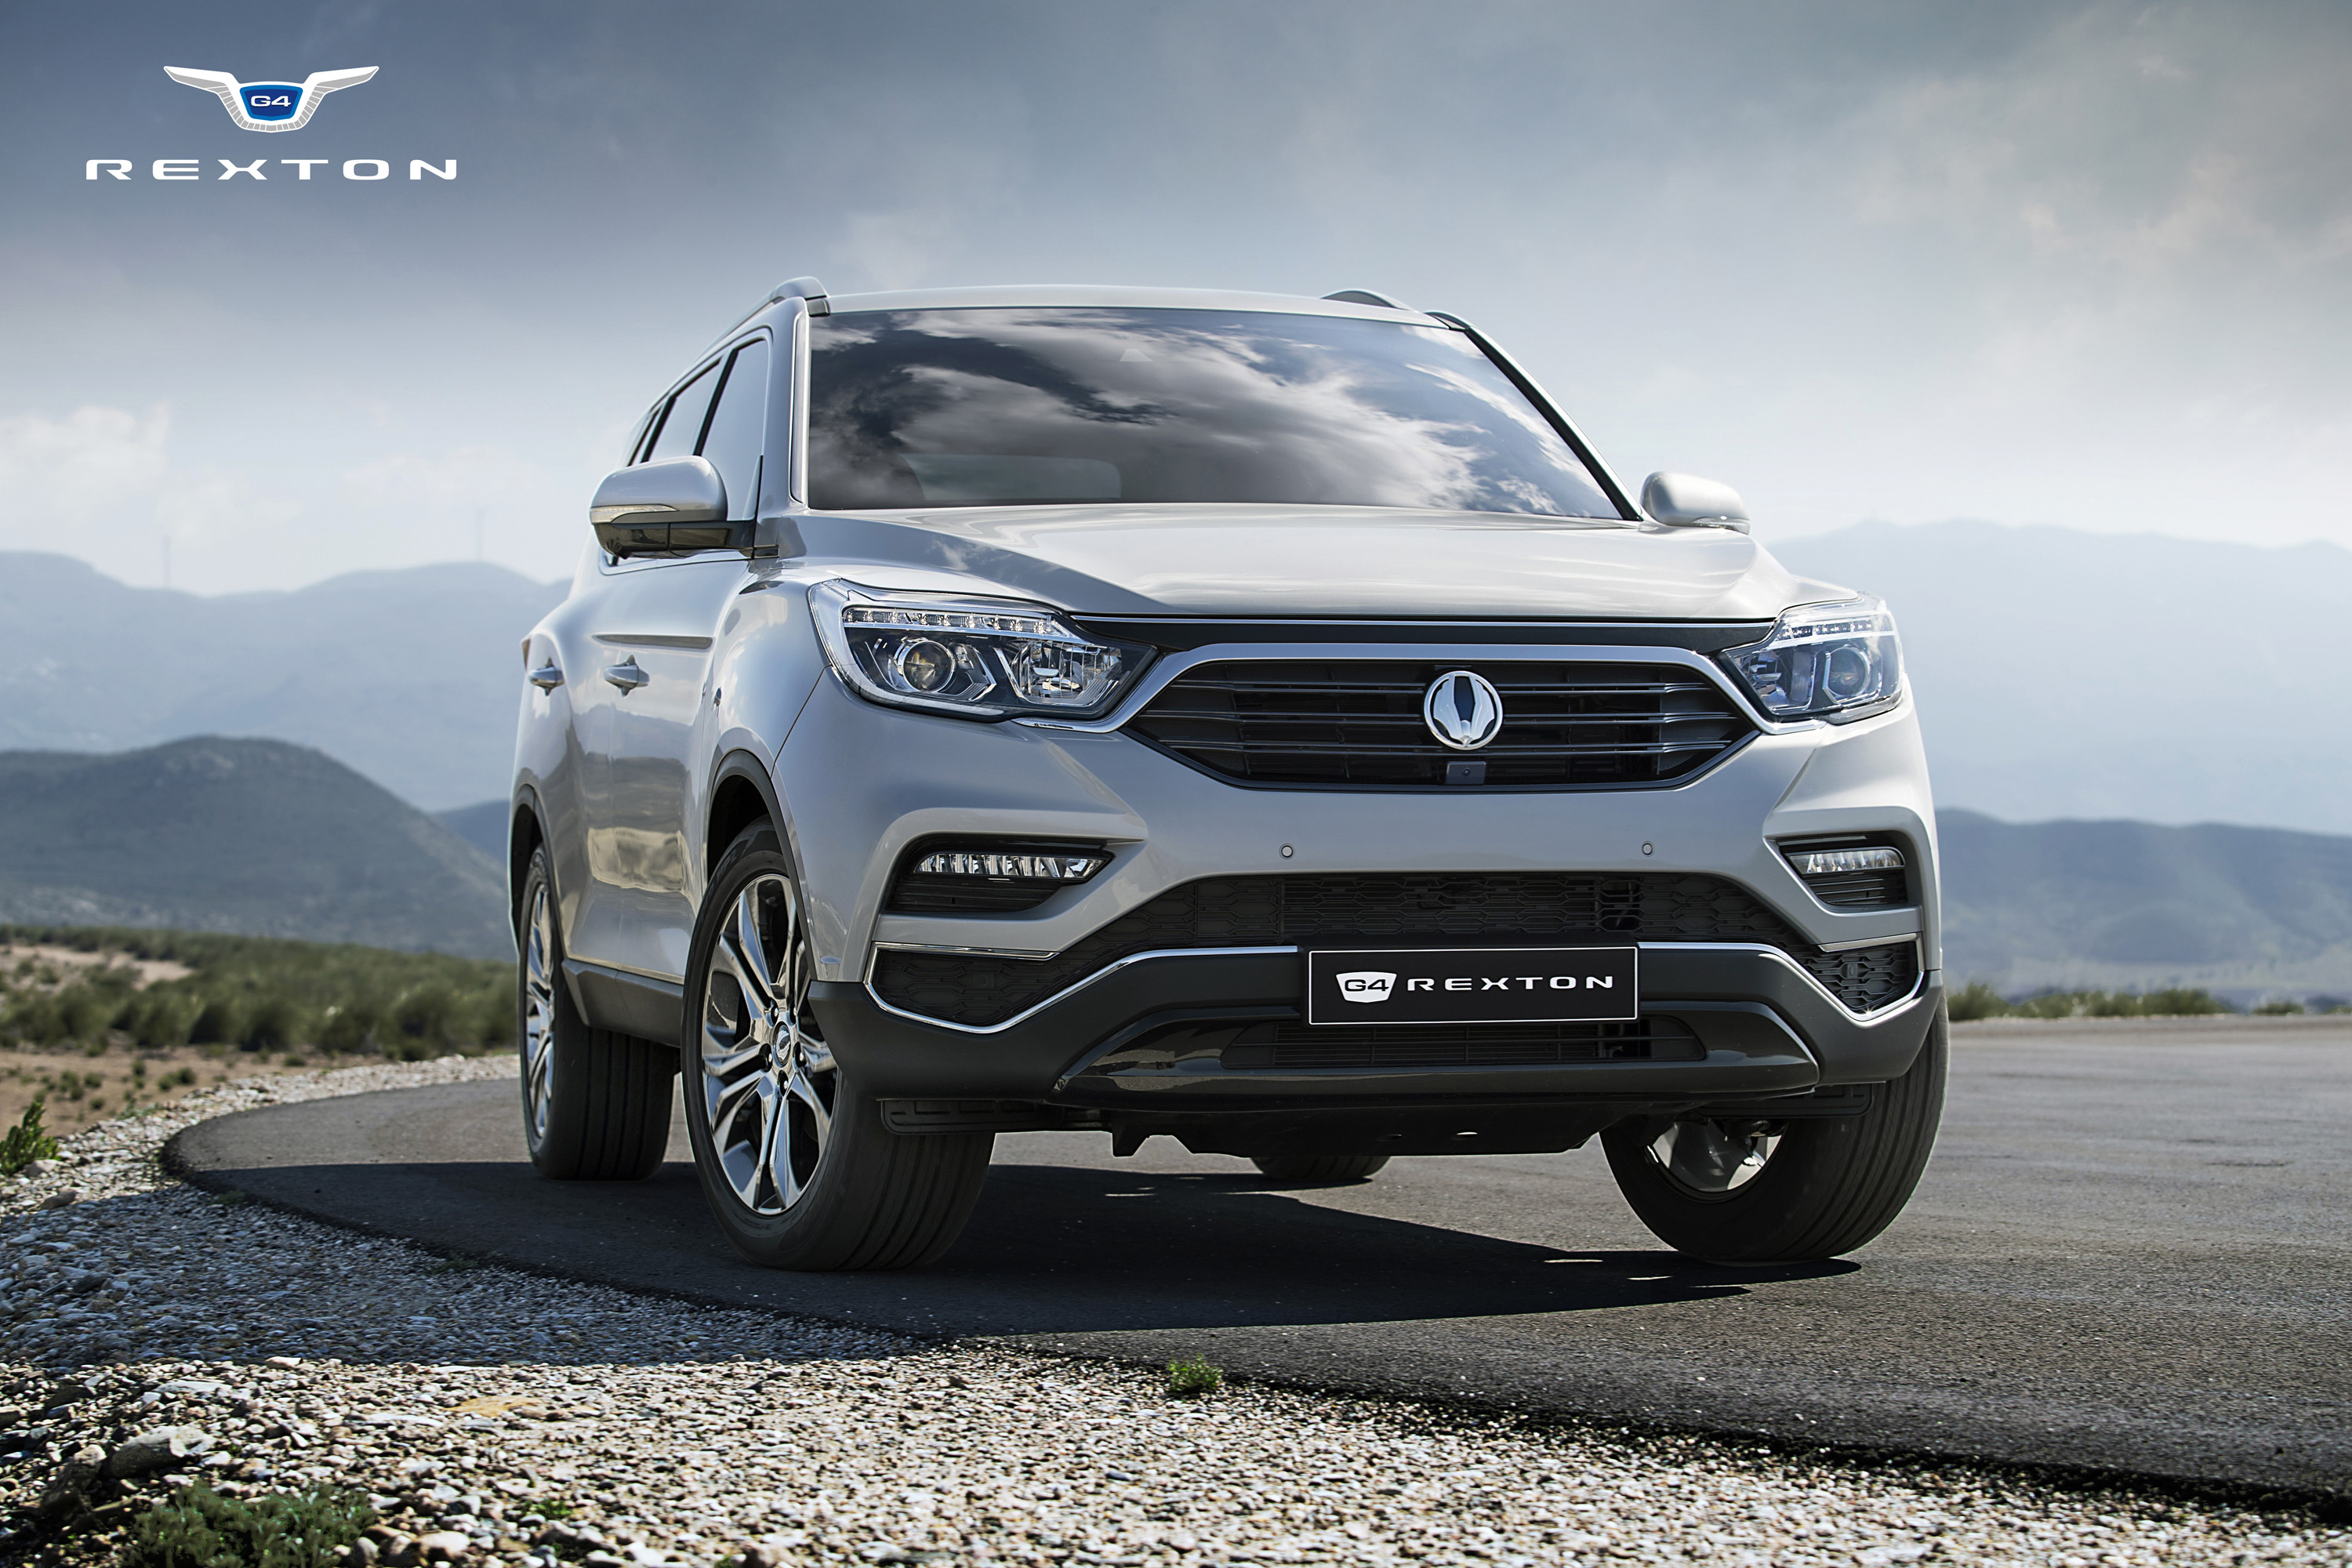 Ssangyong | Korean Automaker Gives Glimpses of G4 Rexton ...